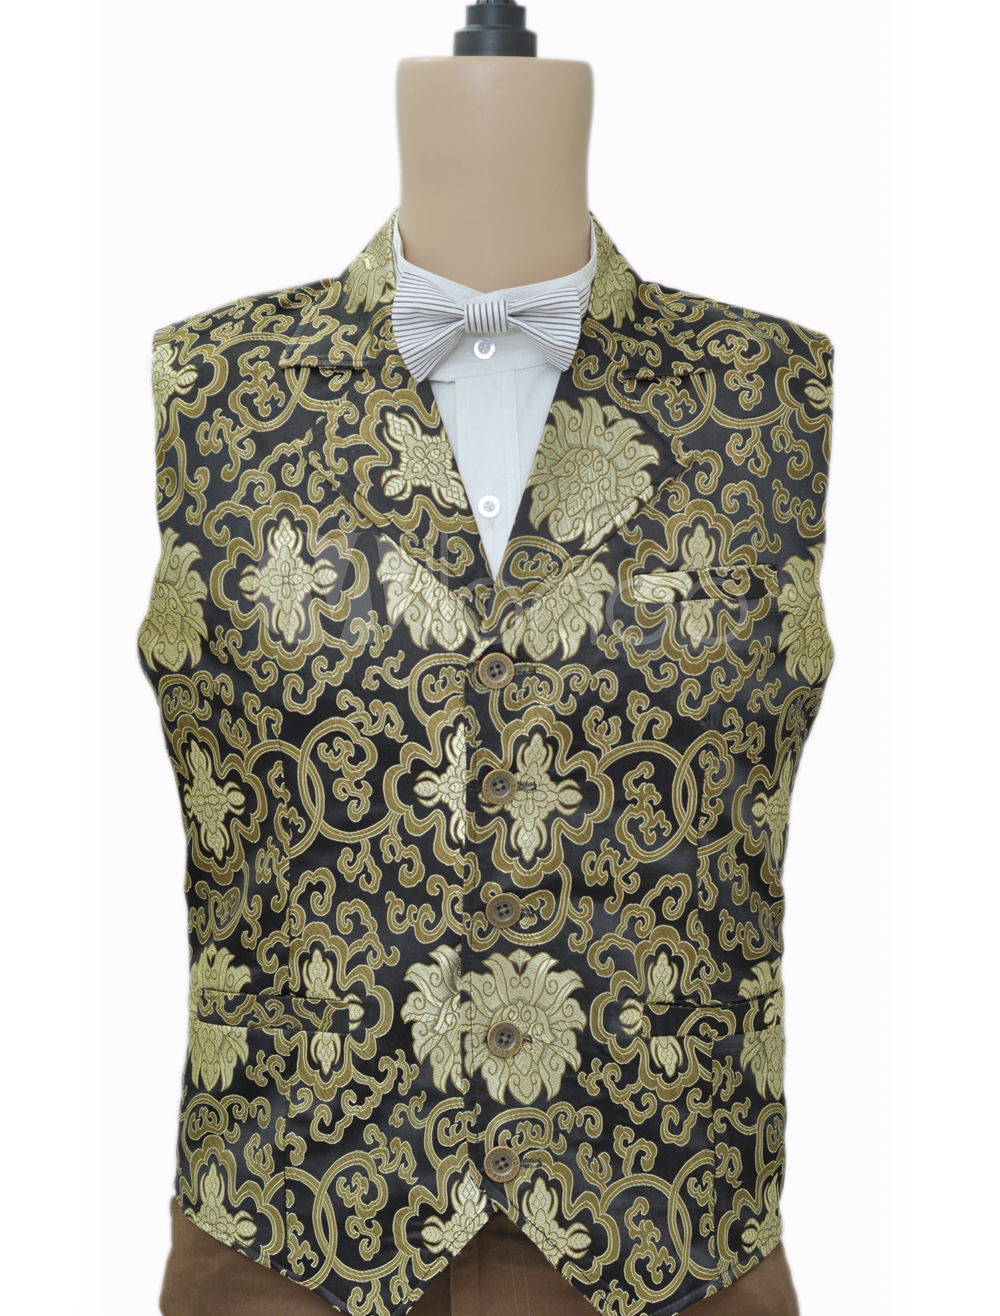 Buy Steampunk Men's Waistcoat Vintage Costume Clothing Jacquard Retro Suit Vest Halloween for $59.99 in Milanoo store